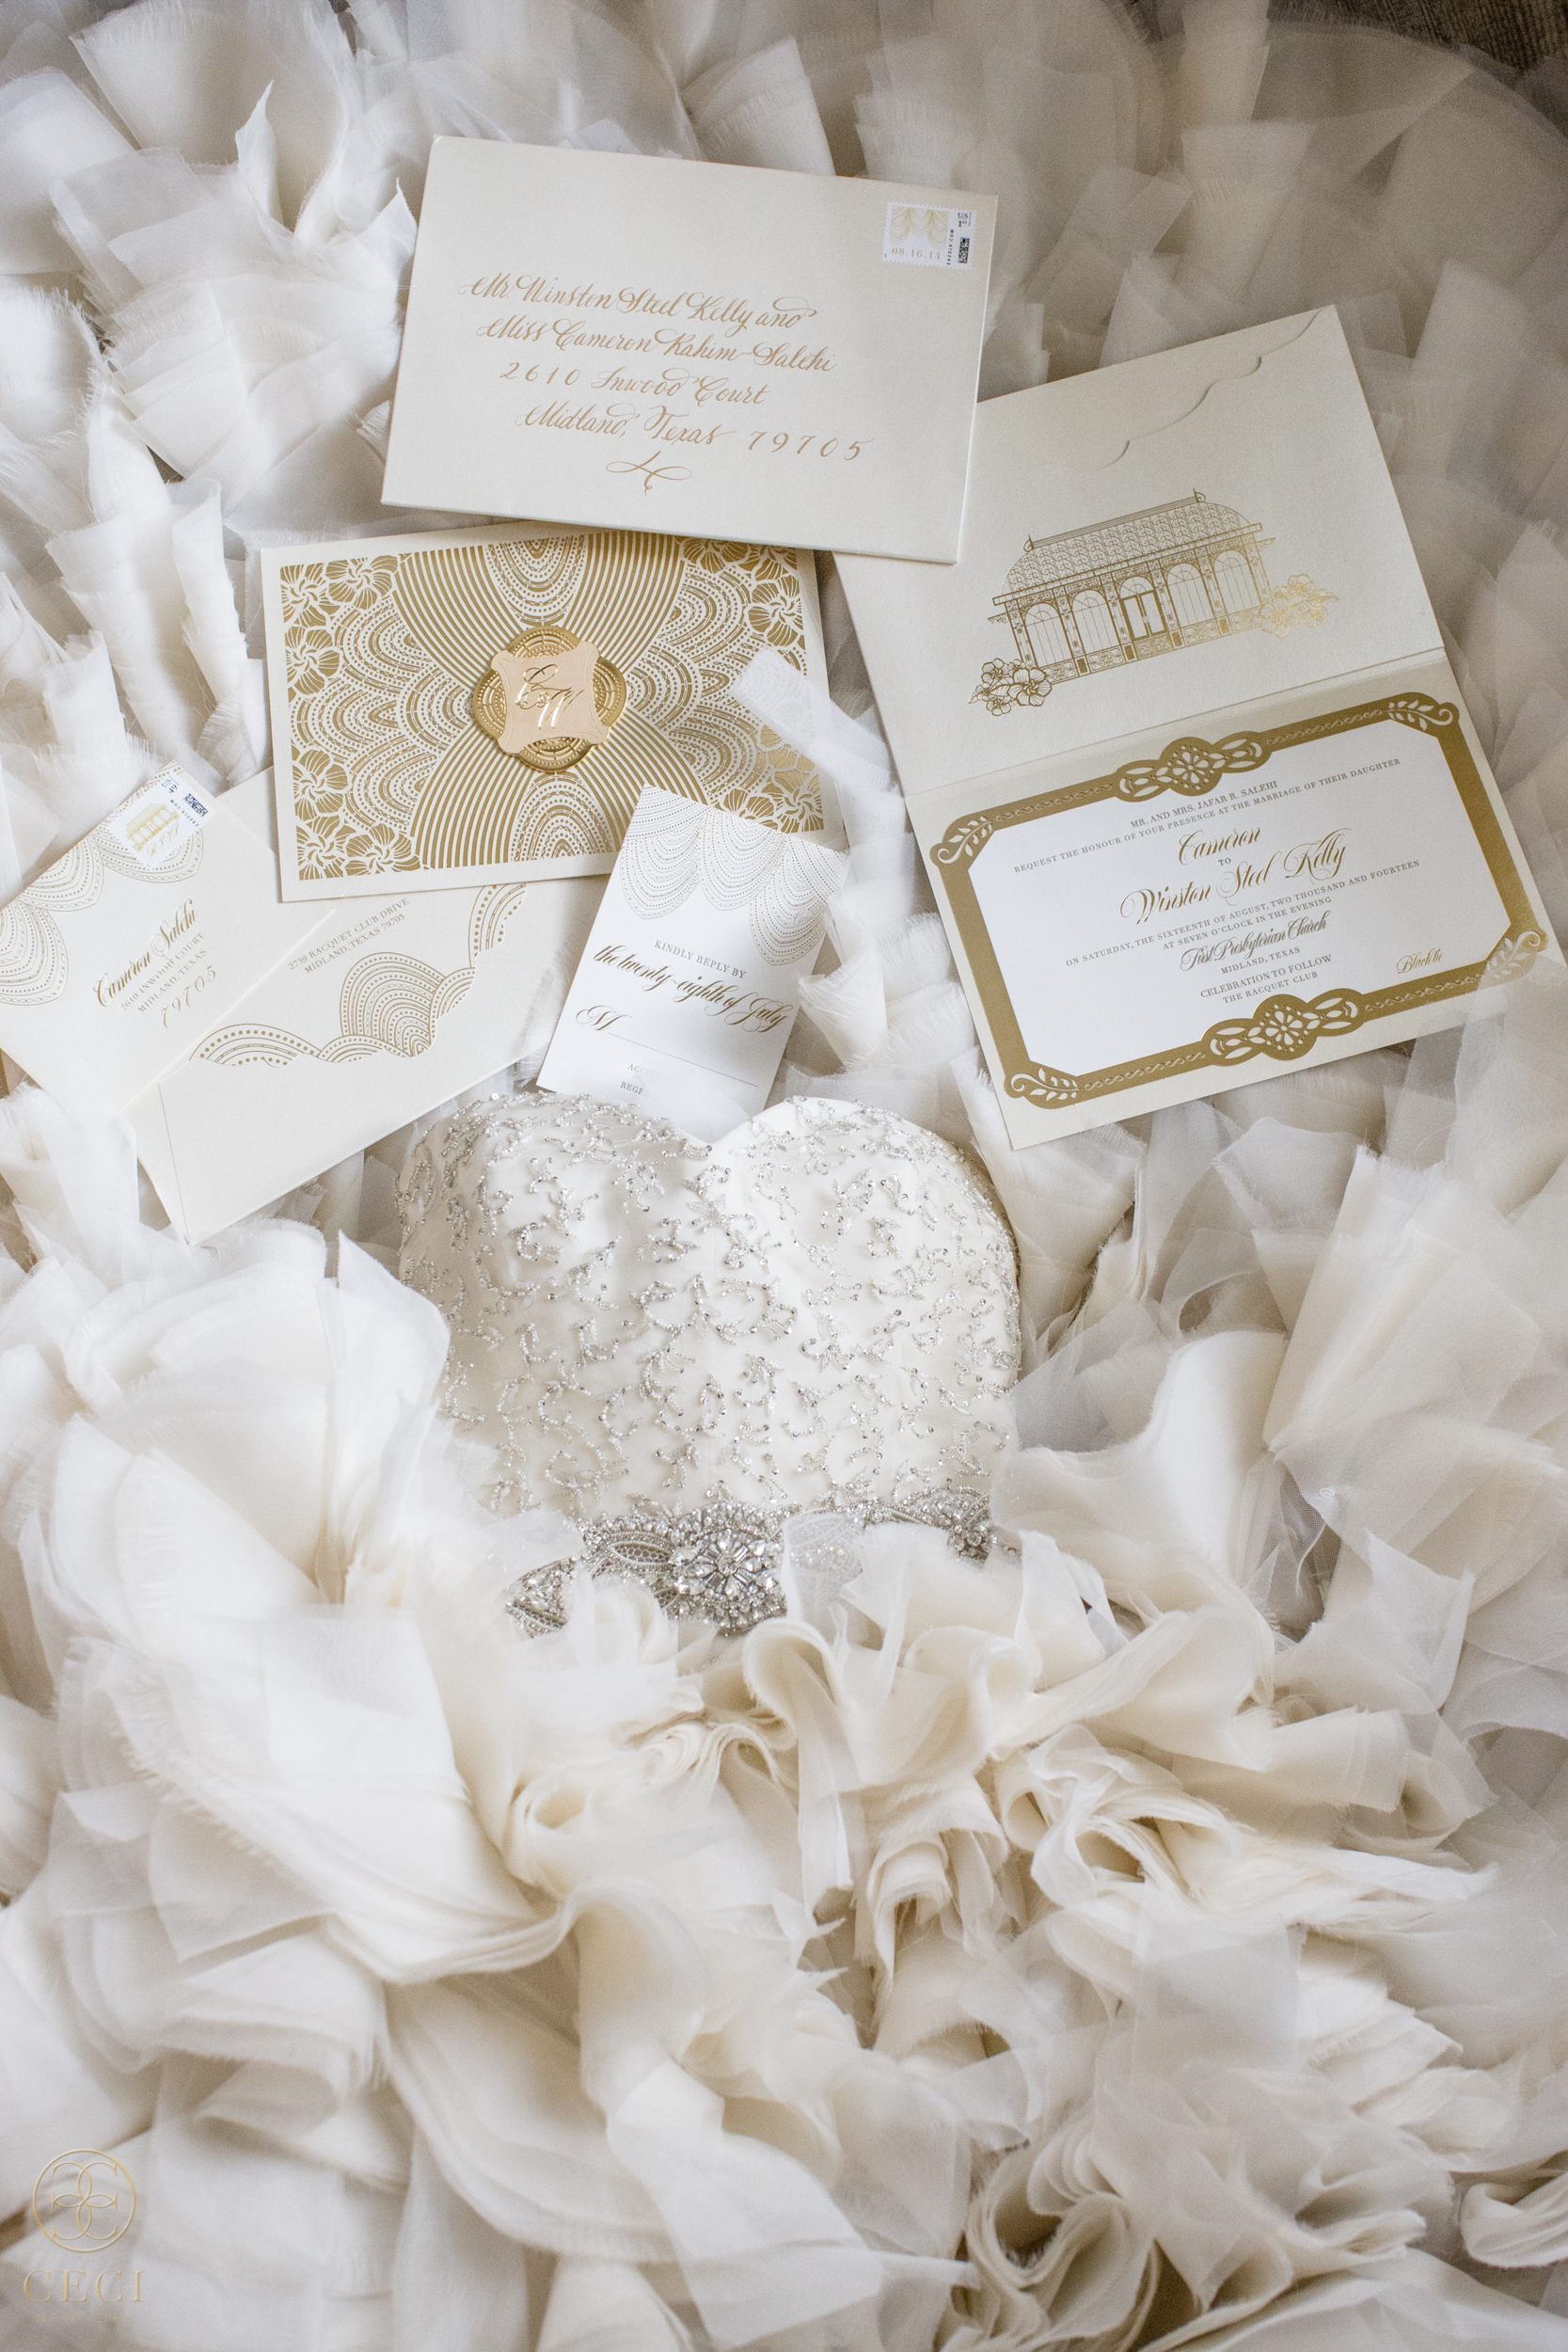 gold_deco_luxe_lavish_wedding_couture_luxury_invitation_design_lasercut_foil_glam_gilded_modern_sophisticated_midland_texas_invitations_suite-2.jpg